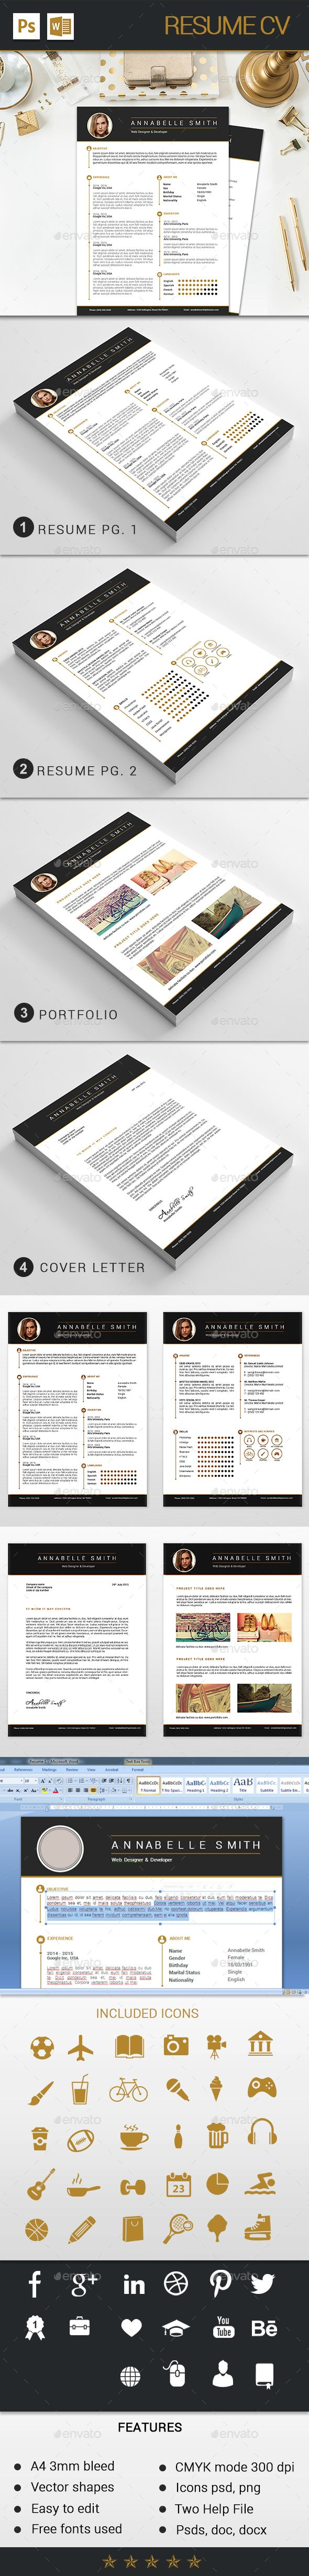 best images about resumes infographic resume resume cv template psd here graphicriver net